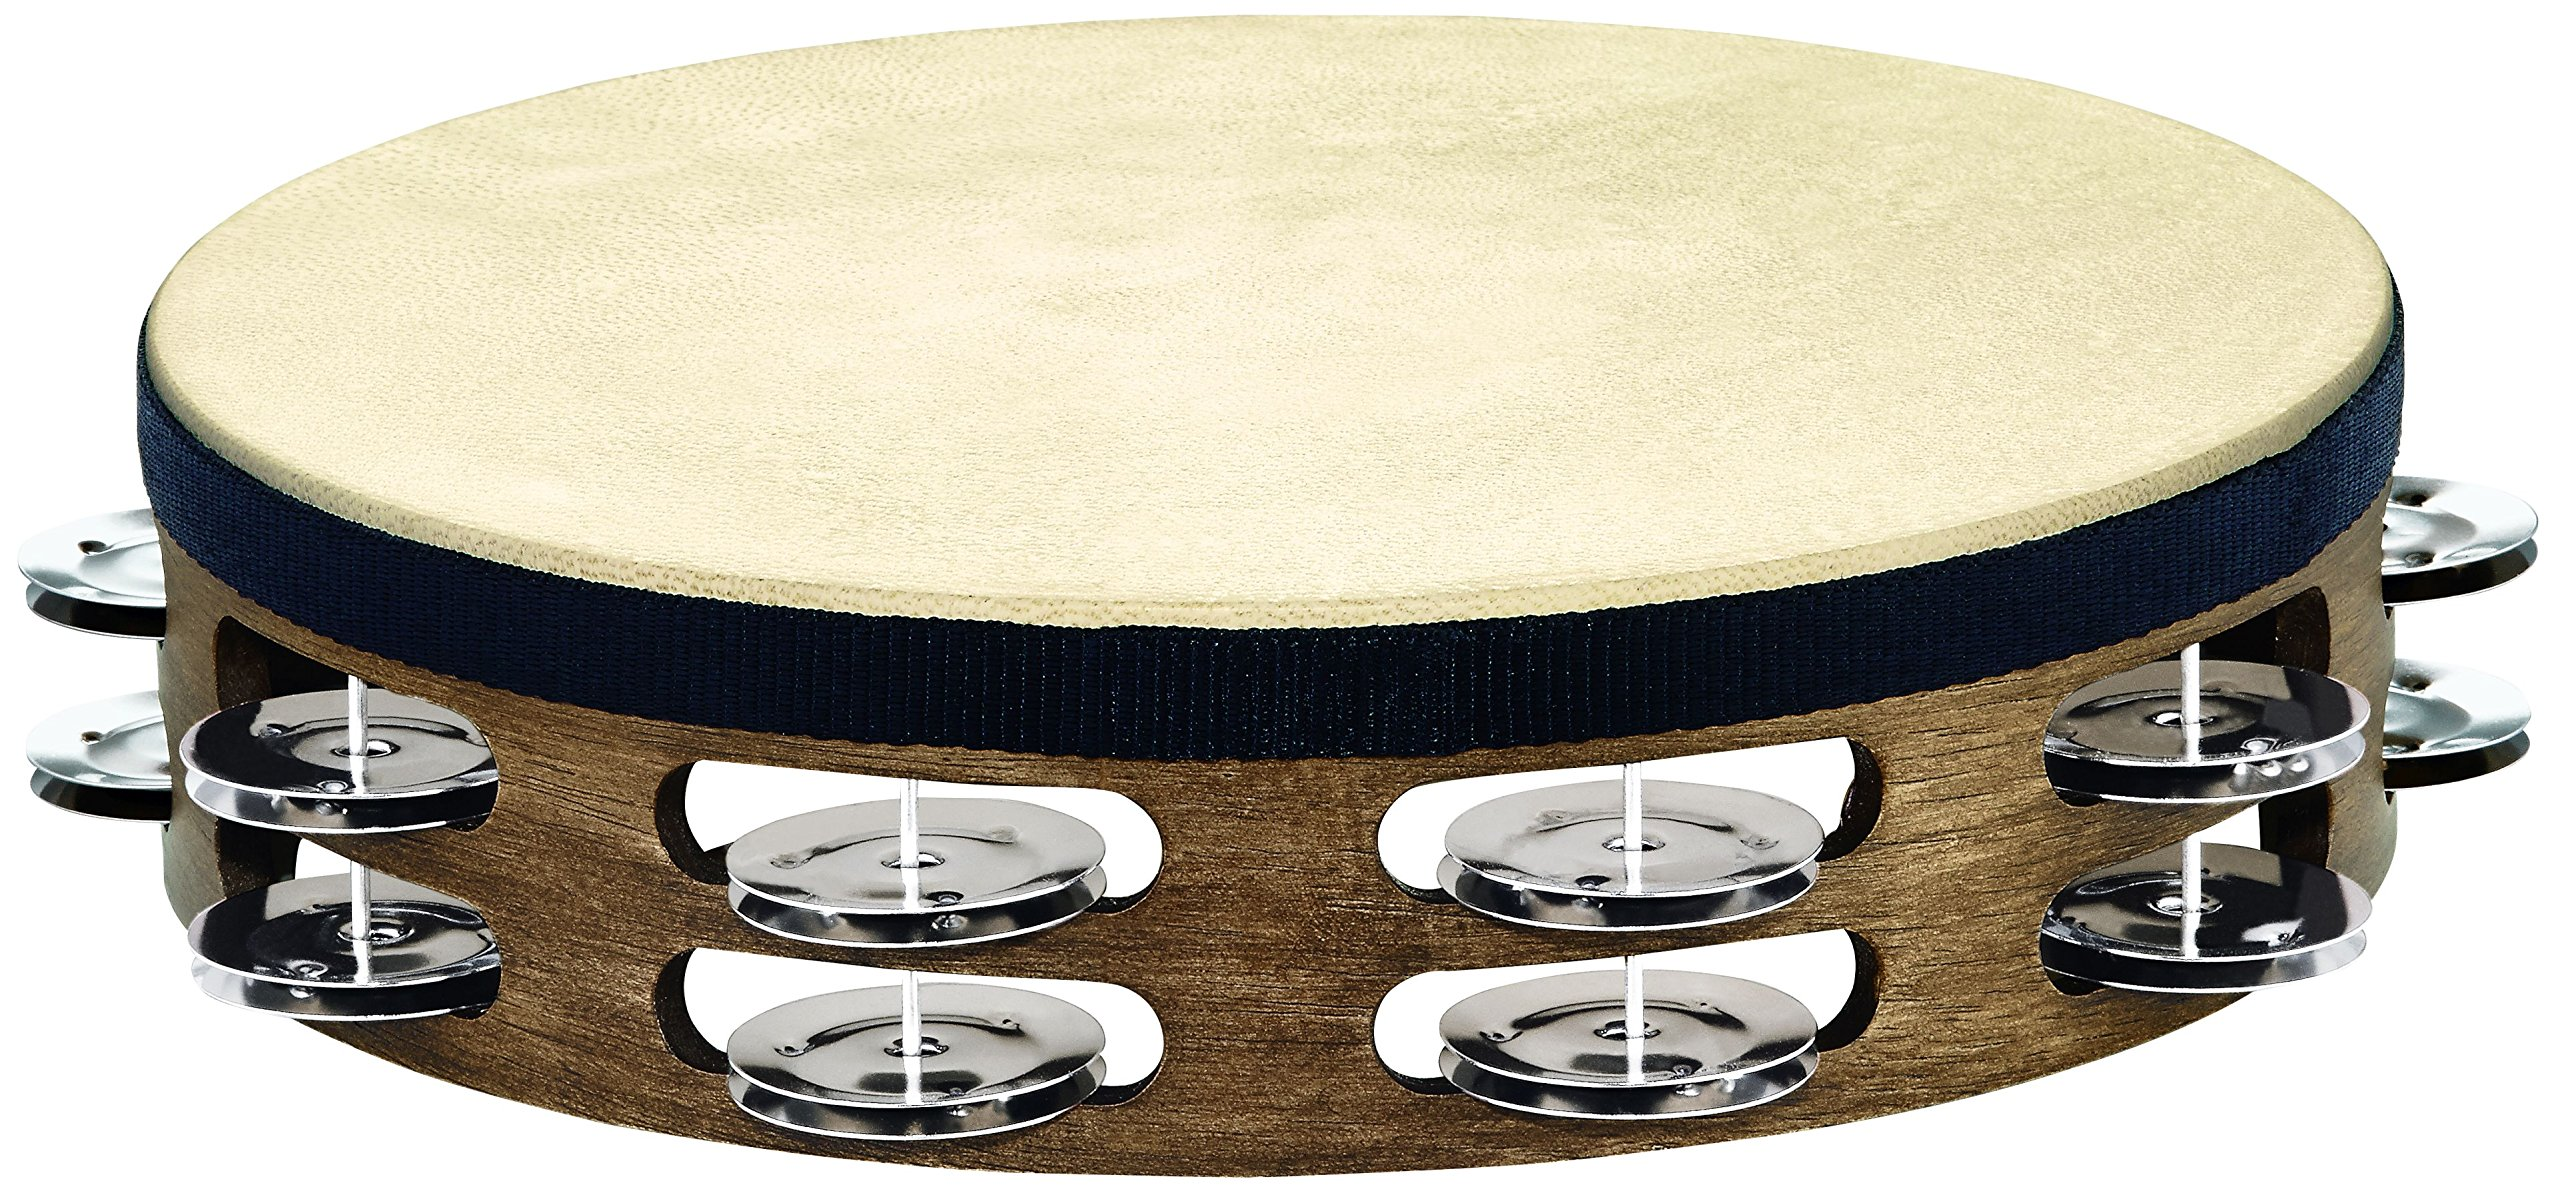 Meinl Percussion TAH2WB 10-Inch Headed Wood Tambourine with Double Row Stainless Steel Jingles, Walnut Brown Finish